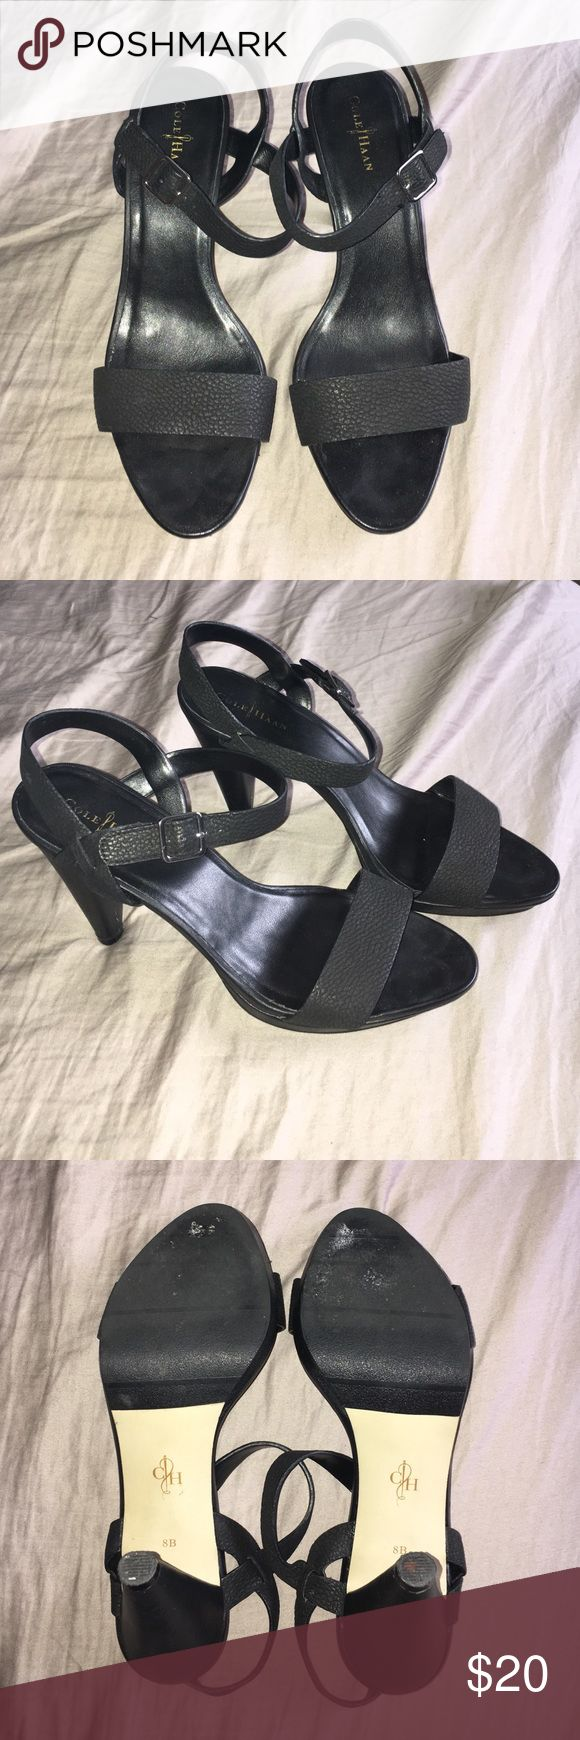 """Cole Haan heels Black leather heels. About 4"""" heel. Bought these from another posher and they were spotless. I'm so sad that they didn't fit me snug enough. I'm typically a 7 1/2. I wore these once to work for an 8 HR shift and they were completely comfortable. If anyone sees these in a 7 1/2 please tag me! They are in gently used condition. Minor scuffs on right side of shoe, not even noticeable once the shoes are on. See last pic. Price reflects the price I paid plus shipping. Cole Haan…"""